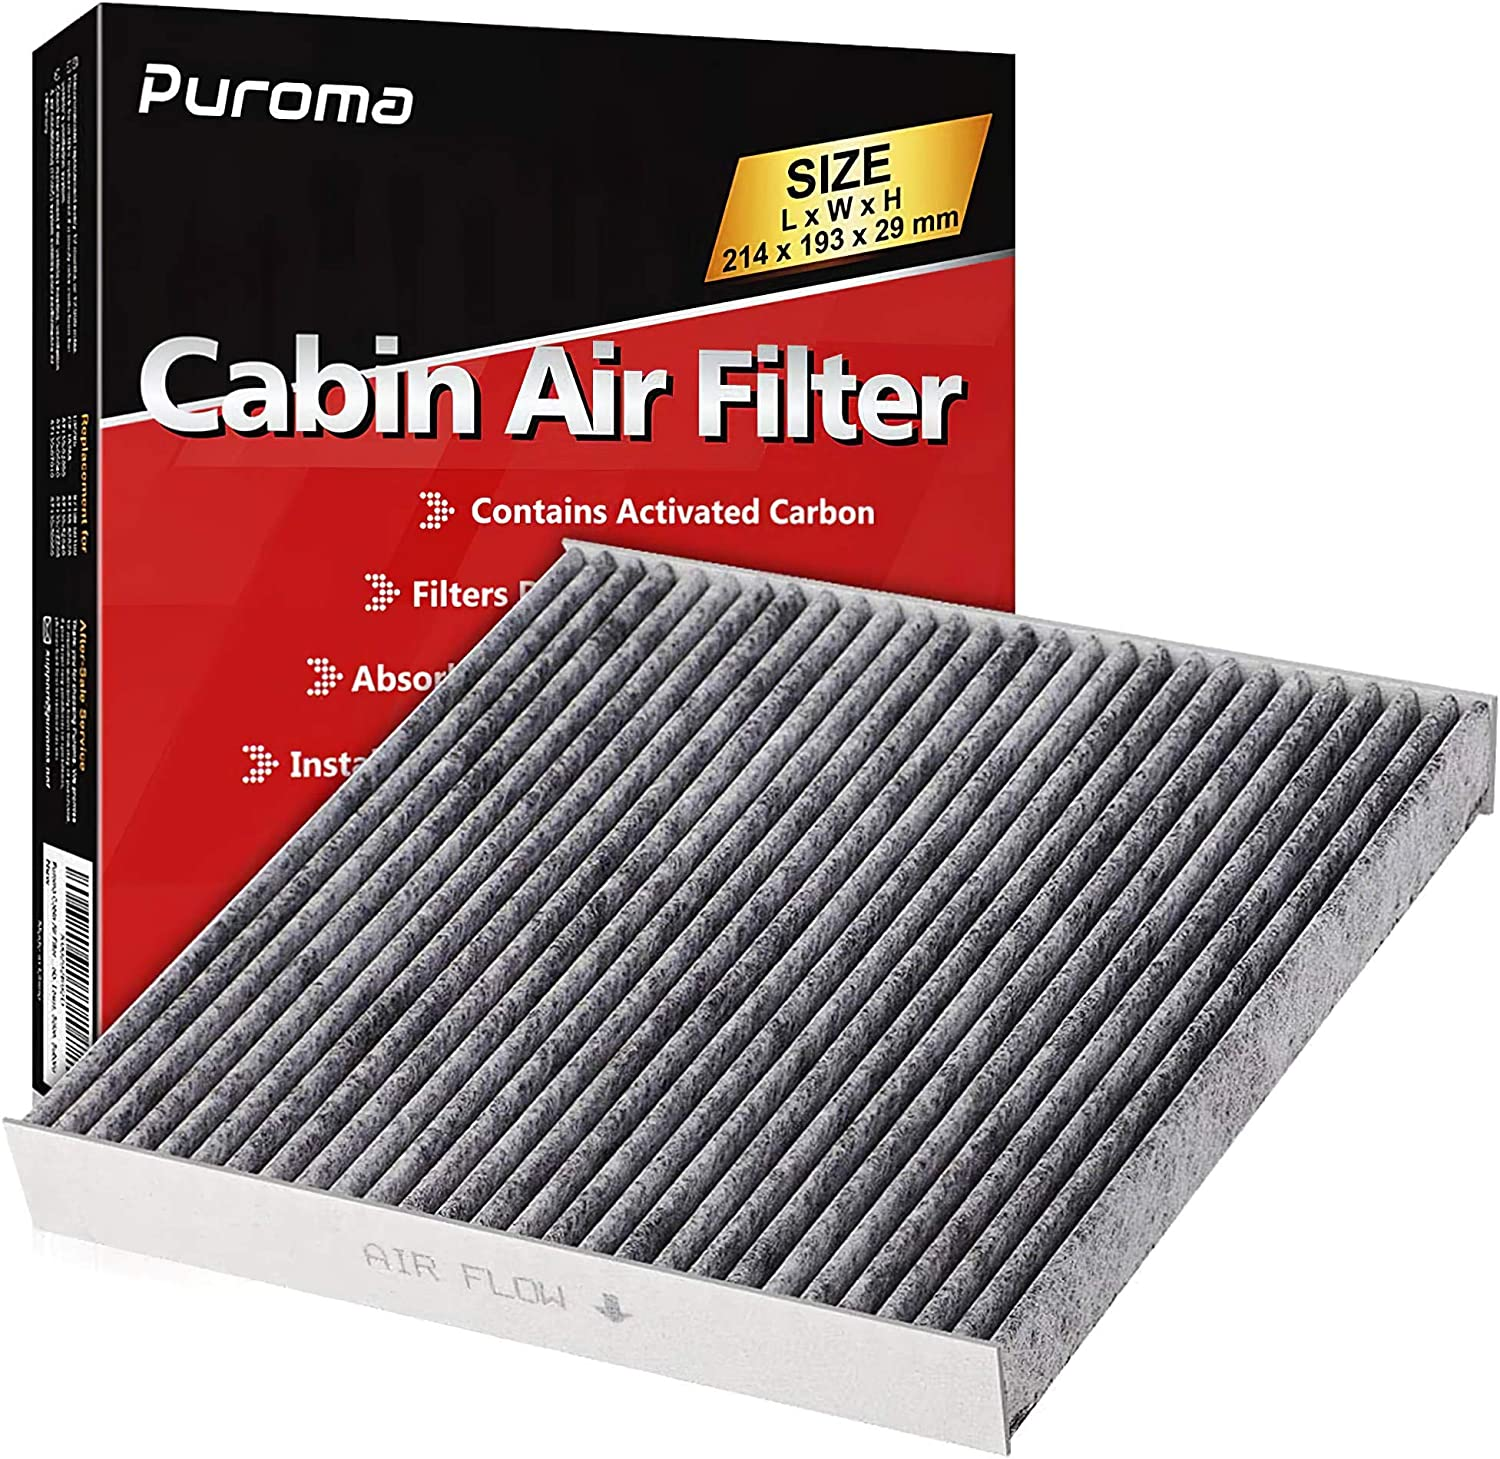 Puroma Cabin Air Filter with Activated Carbon, Replacement for CP285, CF10285, Toyota, Lexus, Scion (1 pc): Automotive